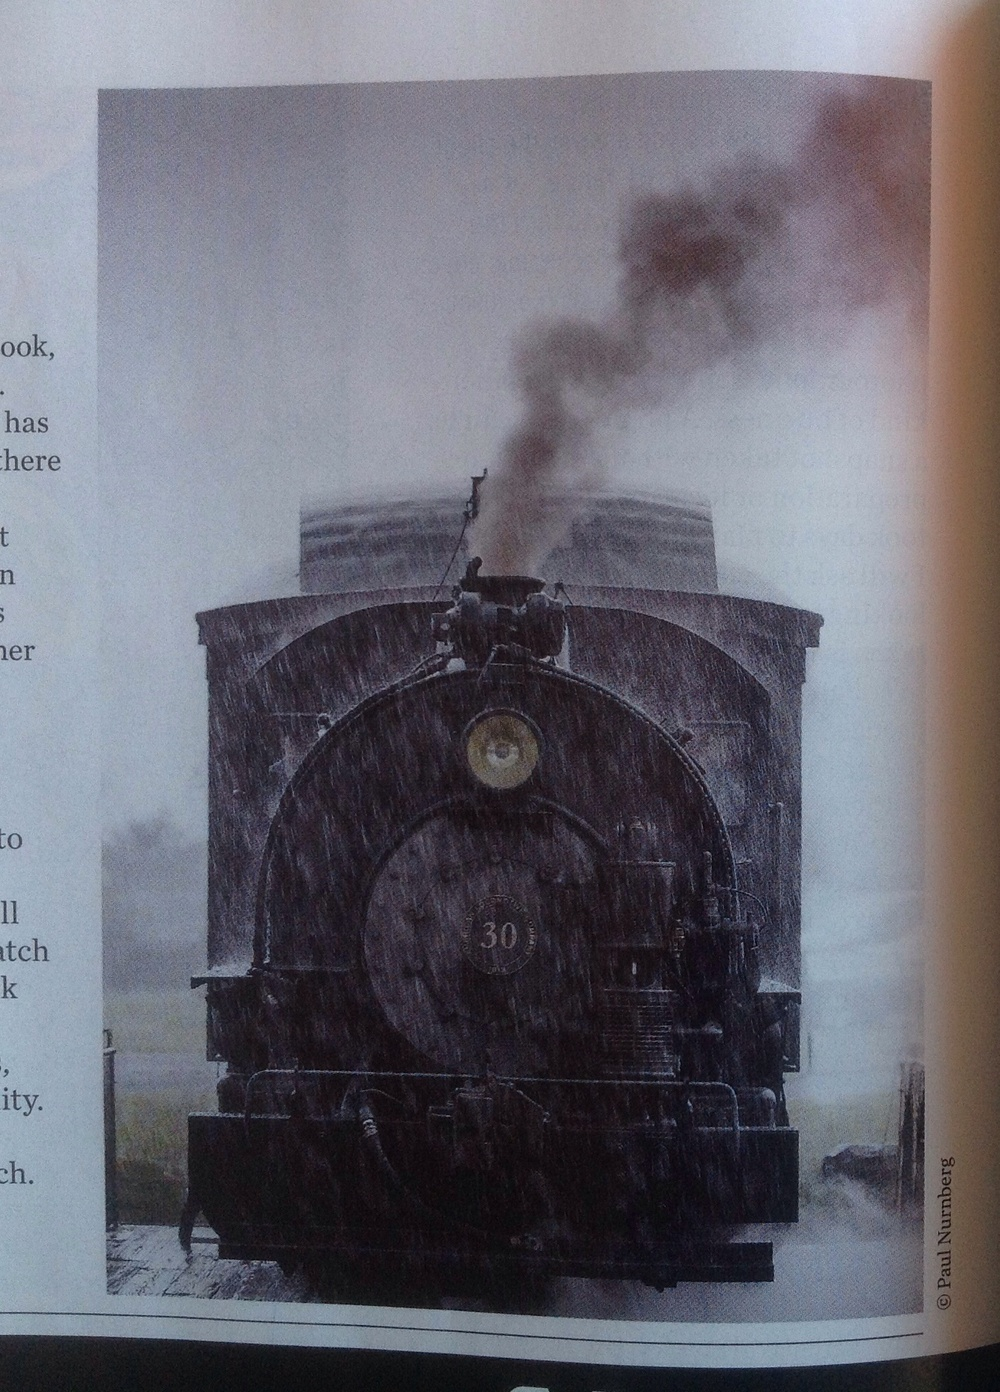 They used one image of mine that I had made of a steam locomotive recently.